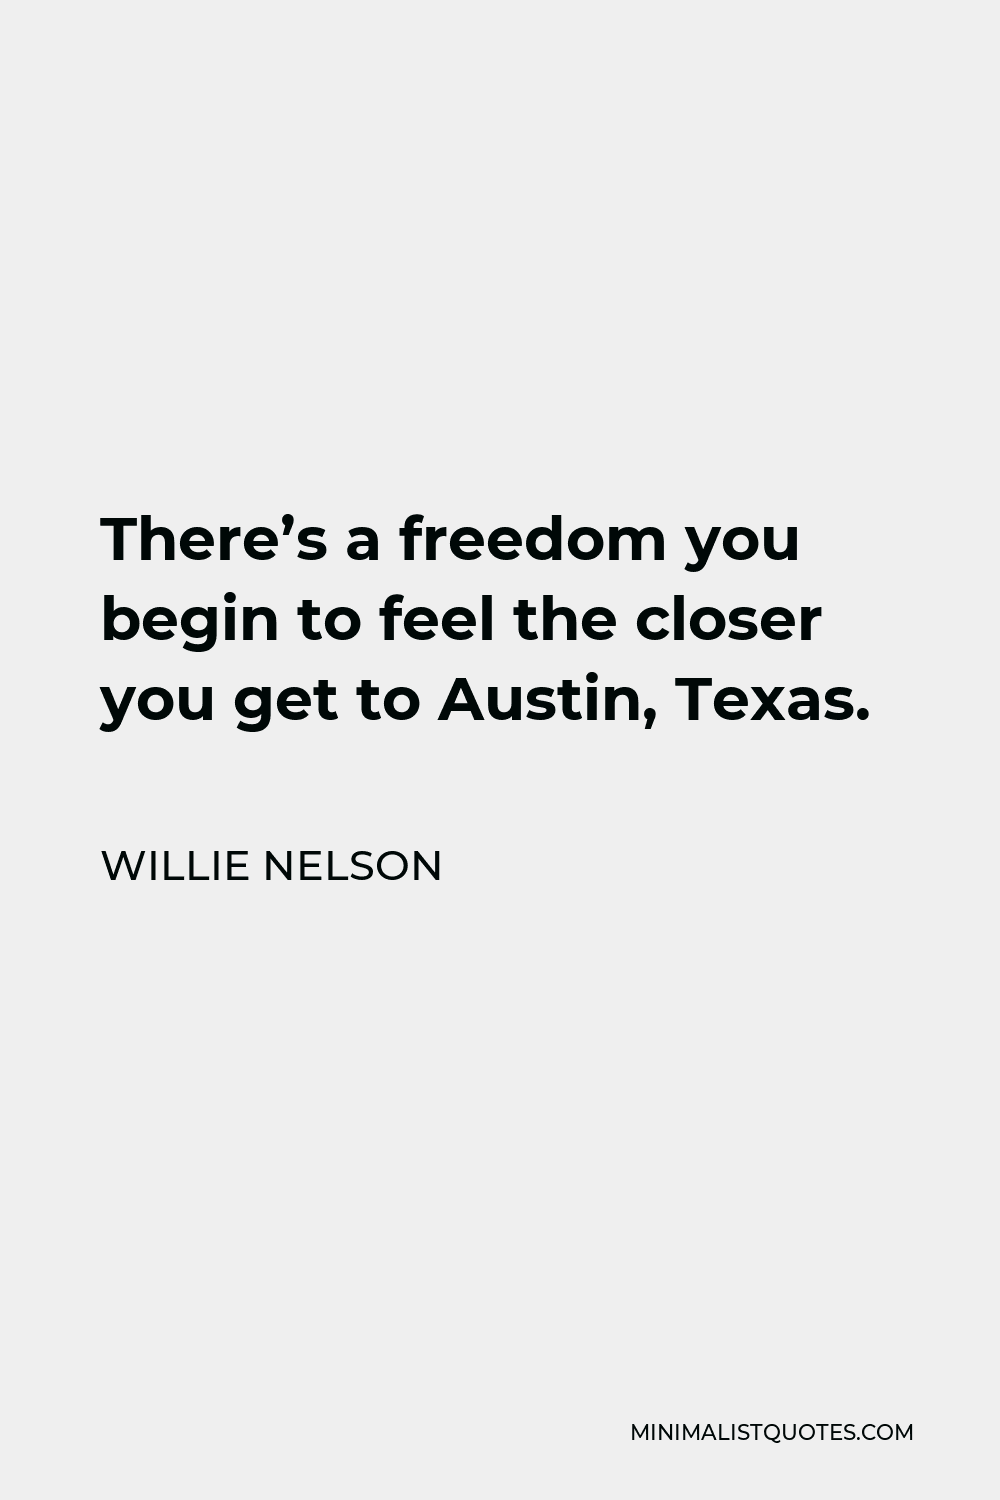 Willie Nelson Quote - There's a freedom you begin to feel the closer you get to Austin, Texas.